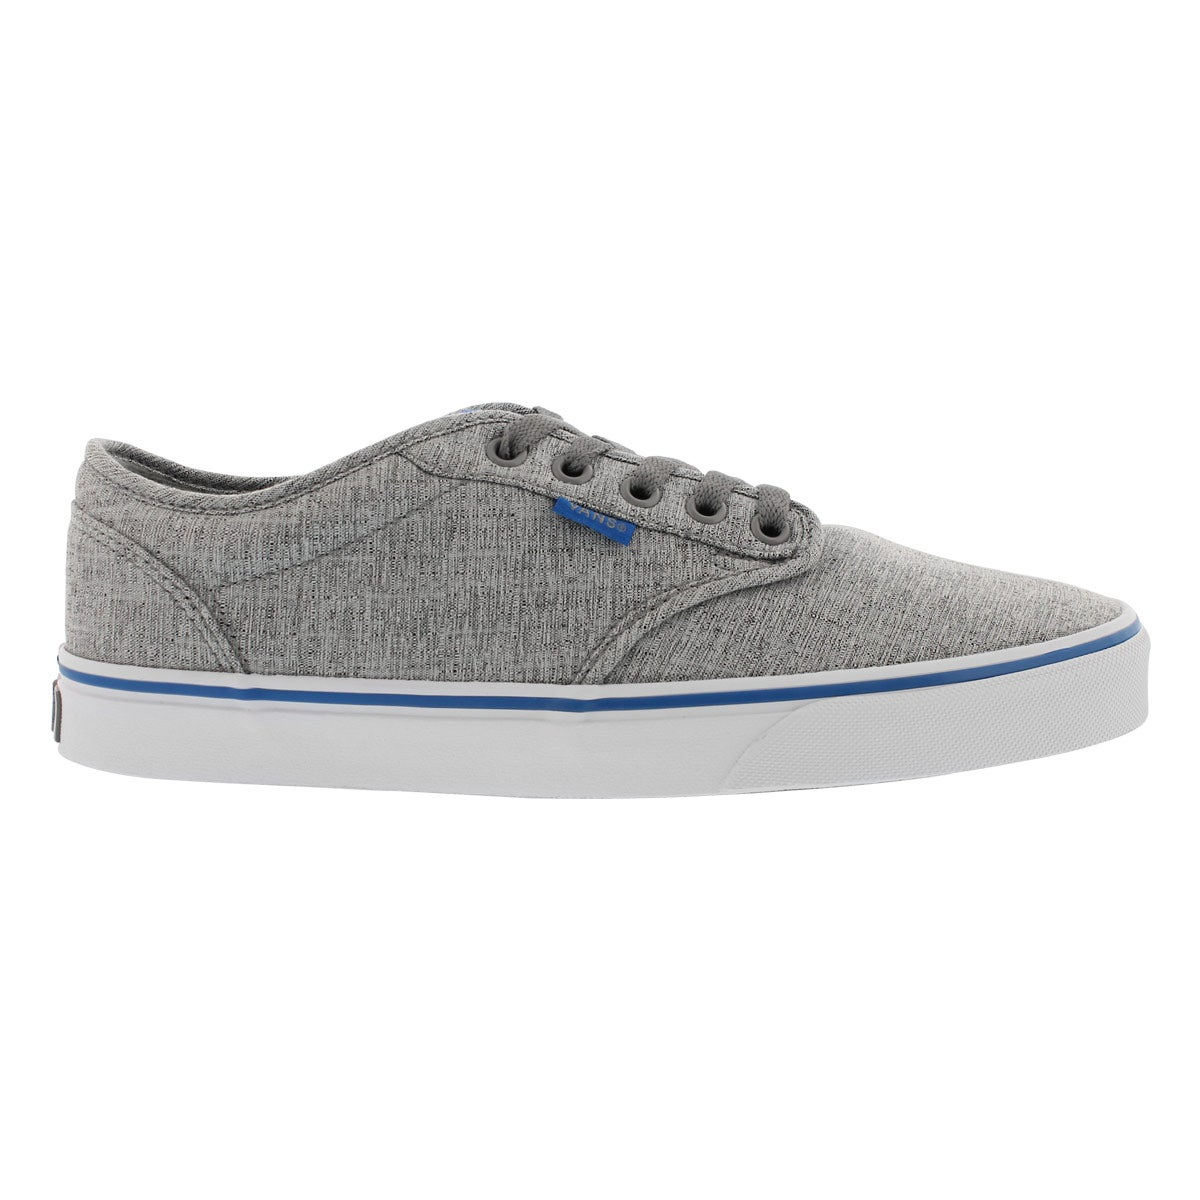 Mns Atwood grey textile lace up sneaker